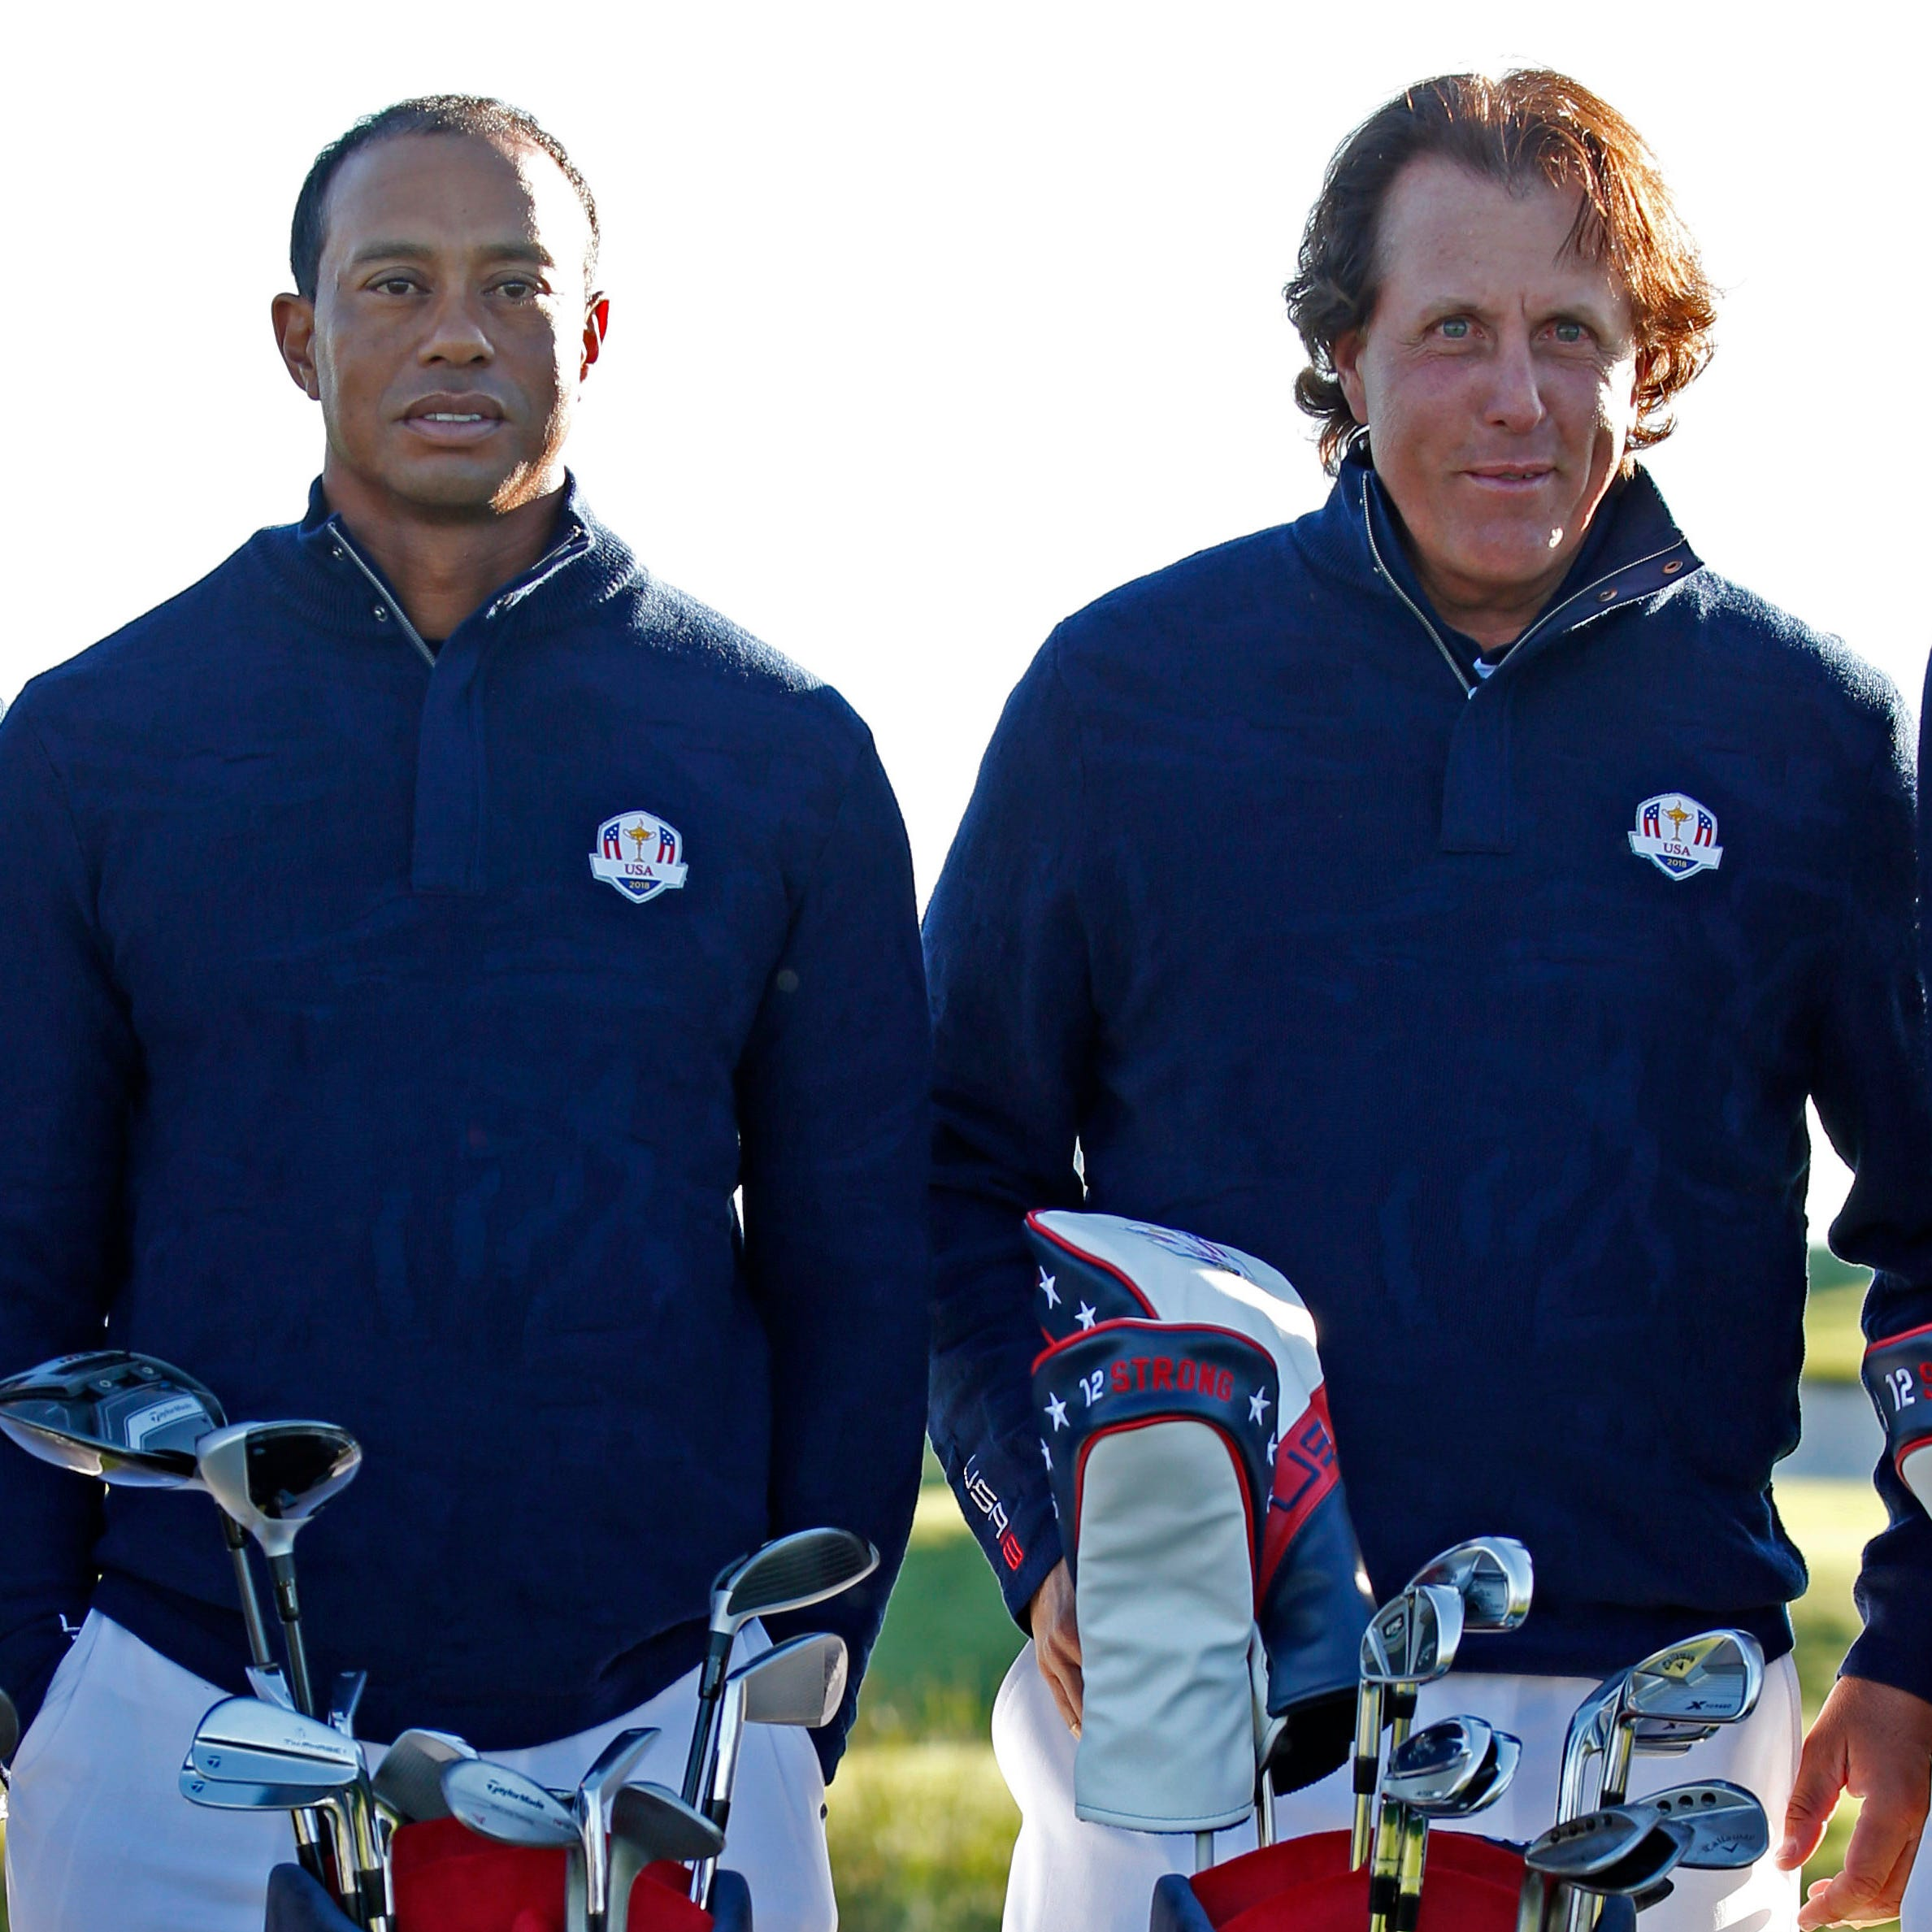 Tiger Woods (left) and Phil Mickelson pose for a photo during 2018 Ryder Cup practice